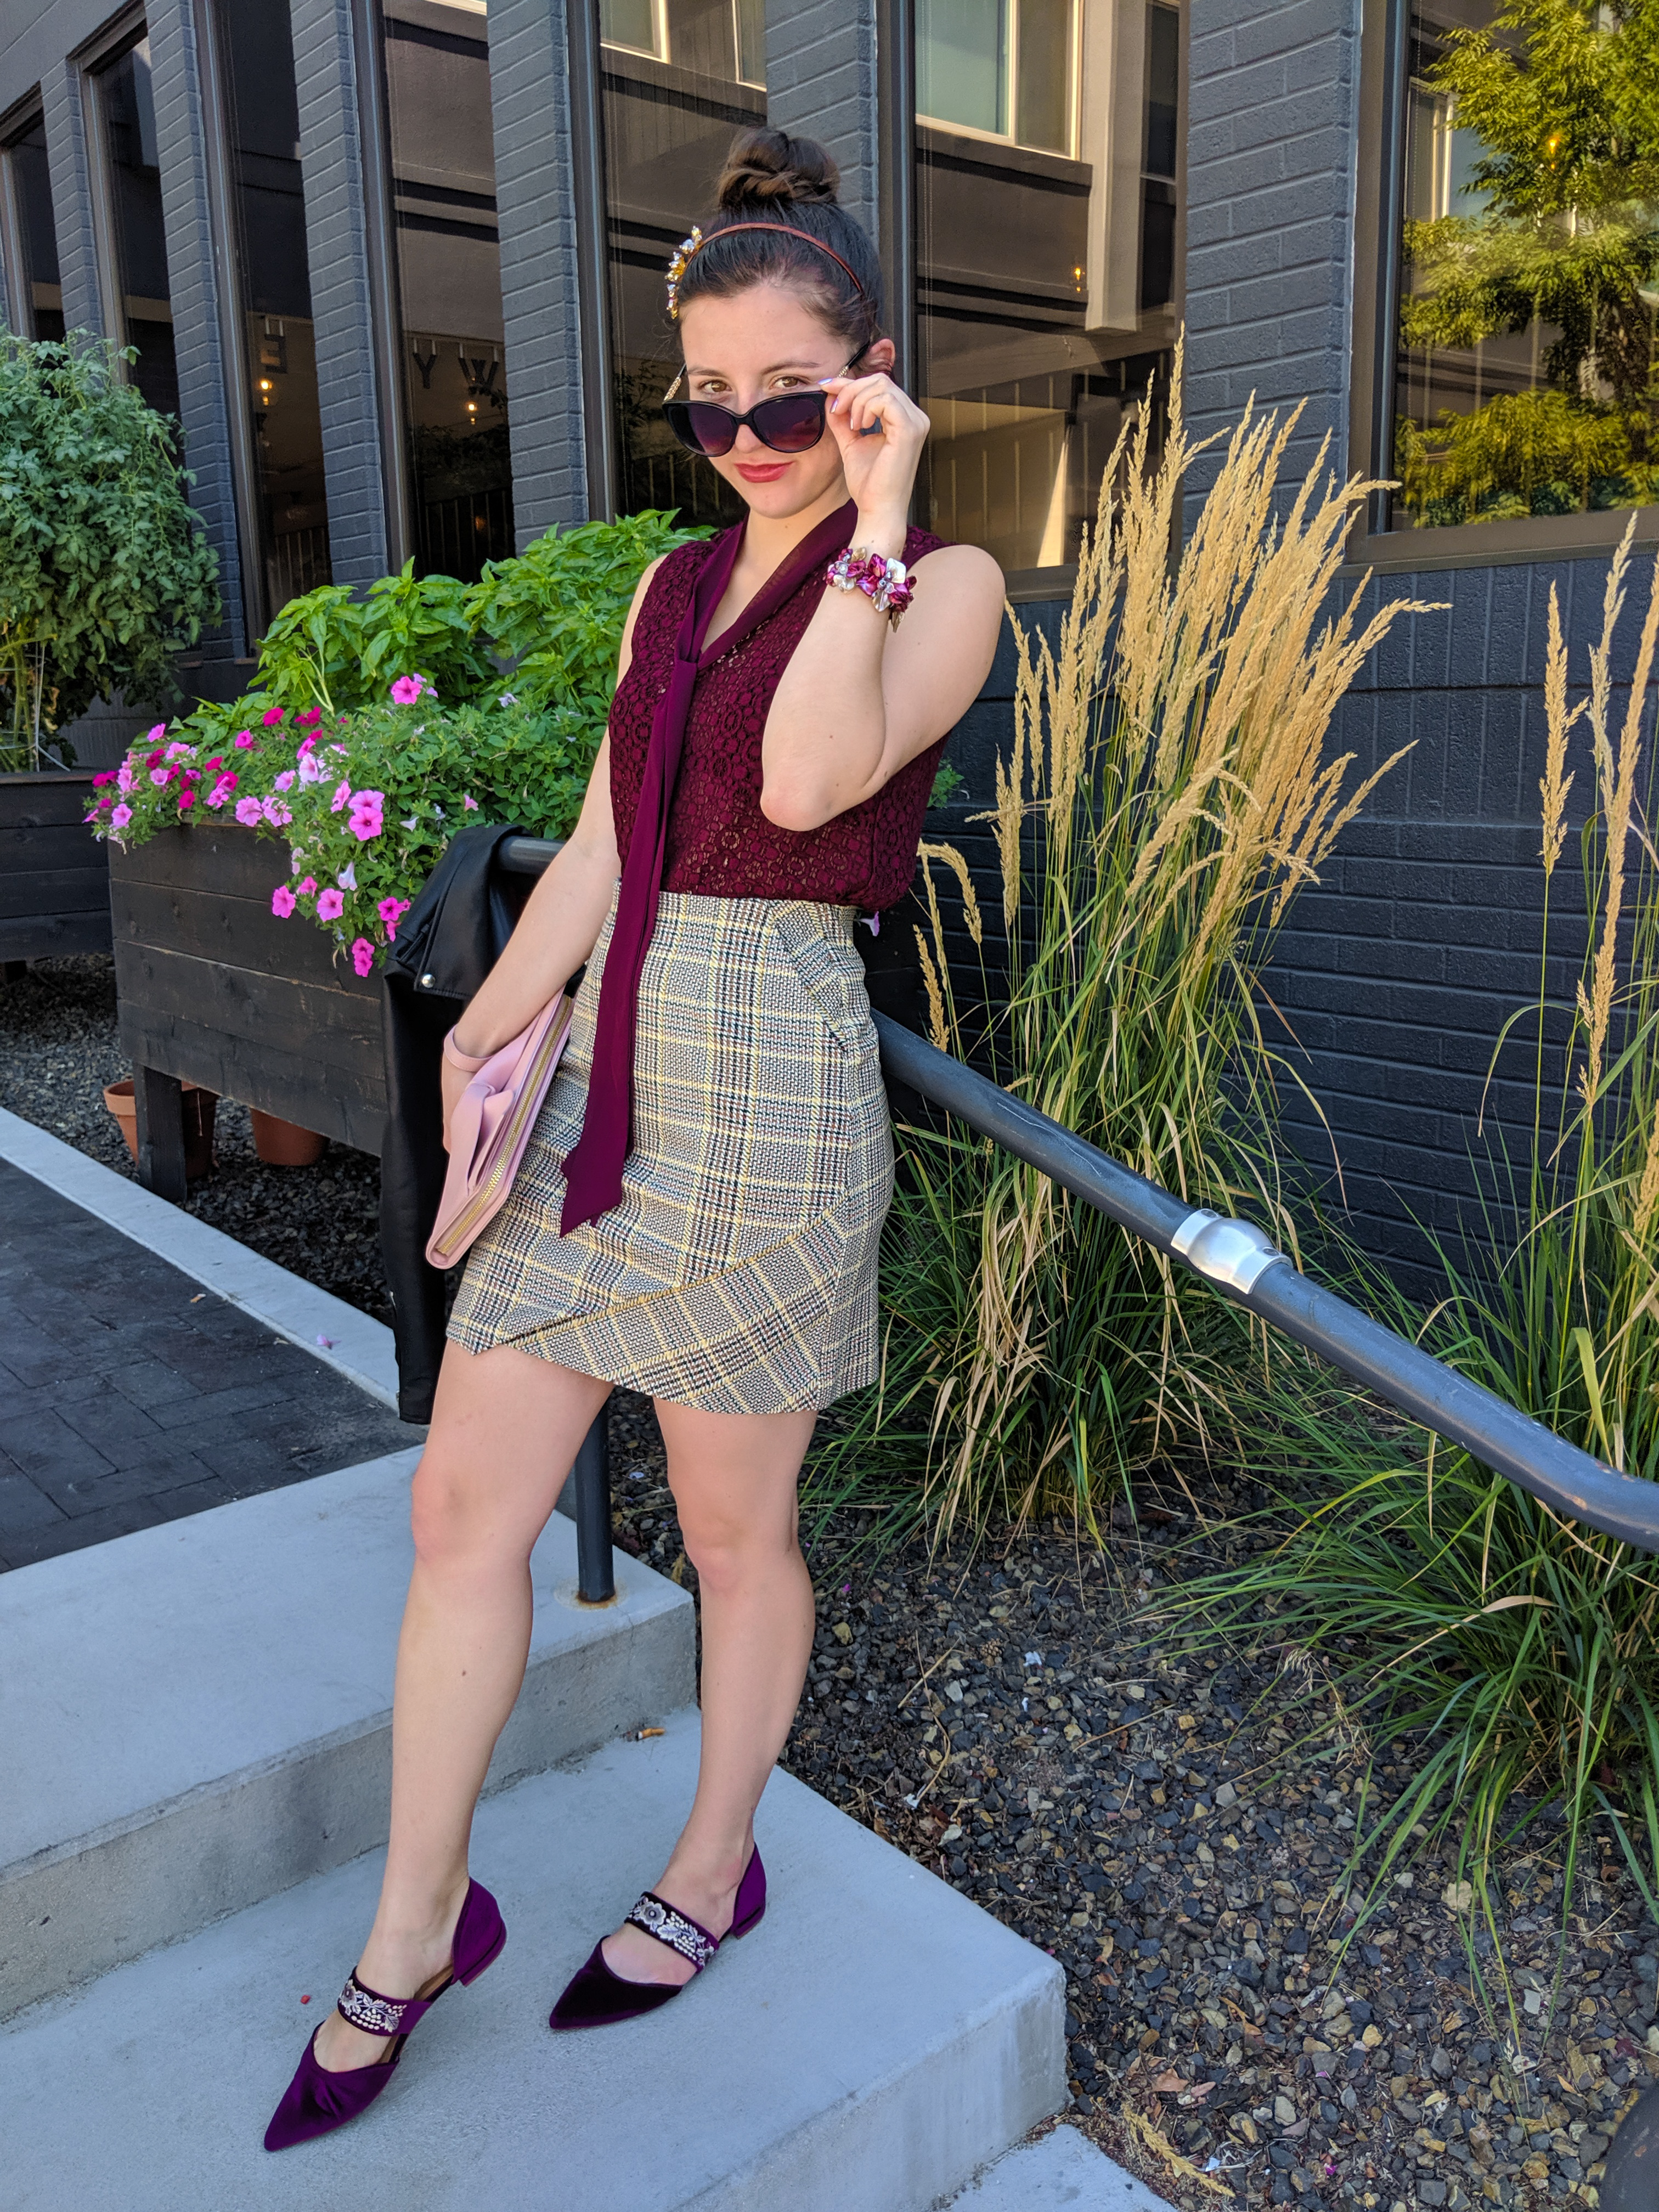 headband, plaid skirt, maroon blouse, work outfit, corporate style